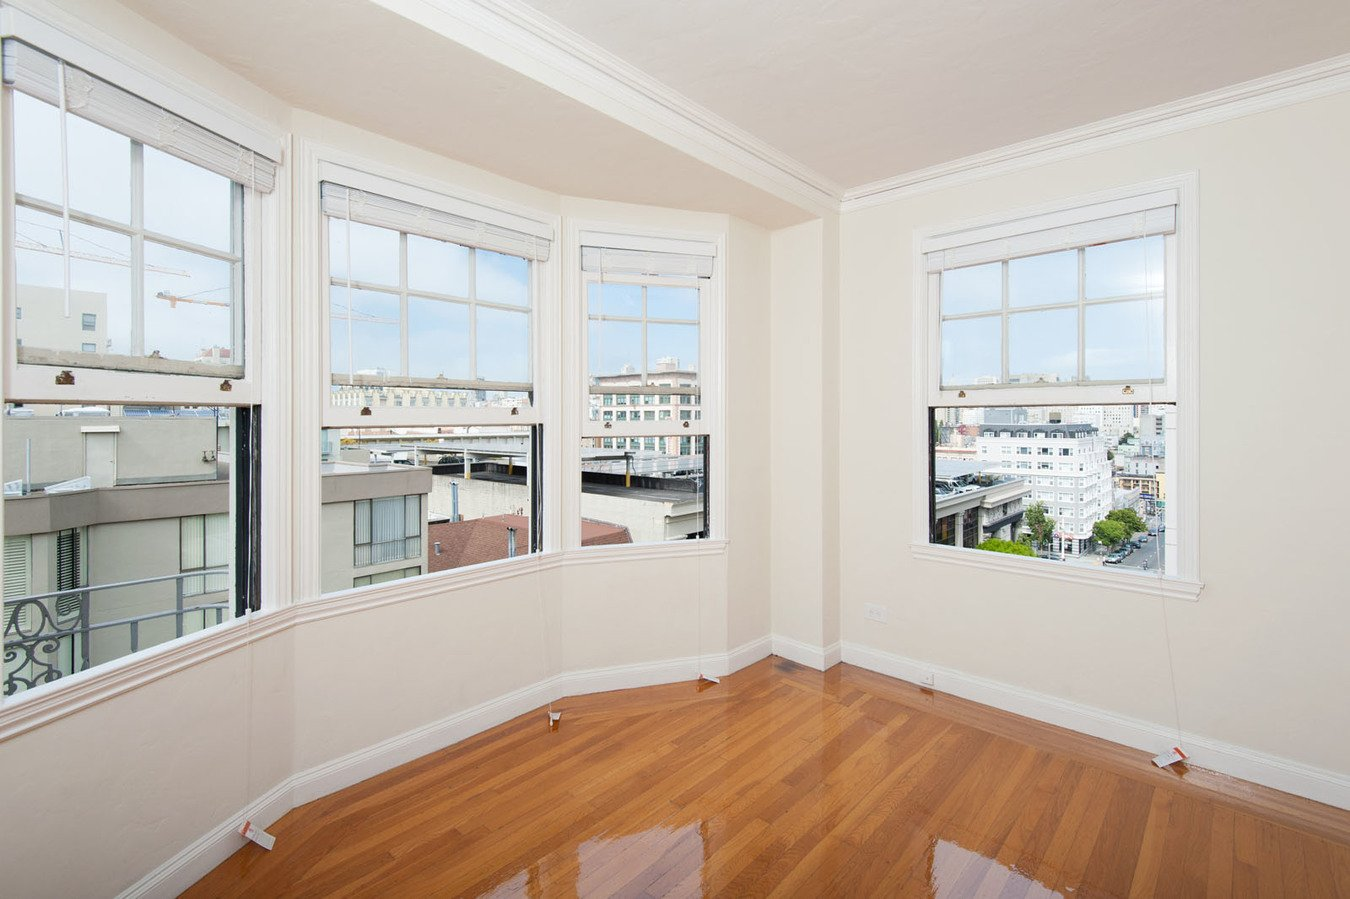 1 Bedroom 1 Bathroom Apartment for rent at 950 Franklin Apartments in San Francisco, CA